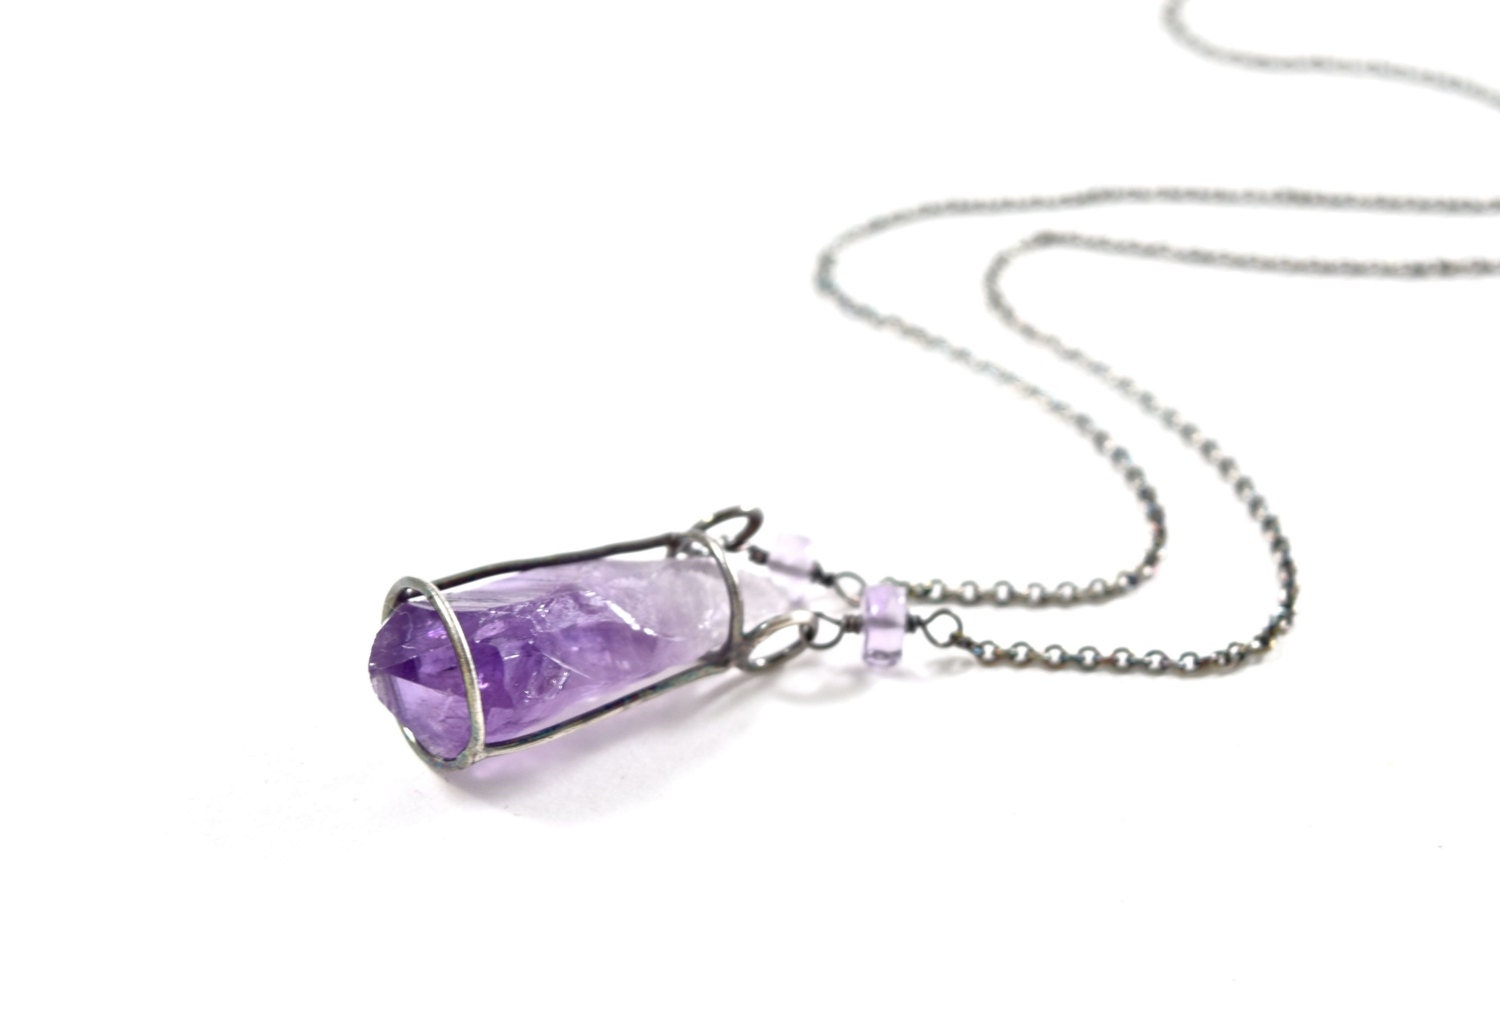 rose amethyst necklace citrine romantic irregular wholesale rock women for crystal natural fluorite wrap quartz product new raw pendant jade beads stone mens wire